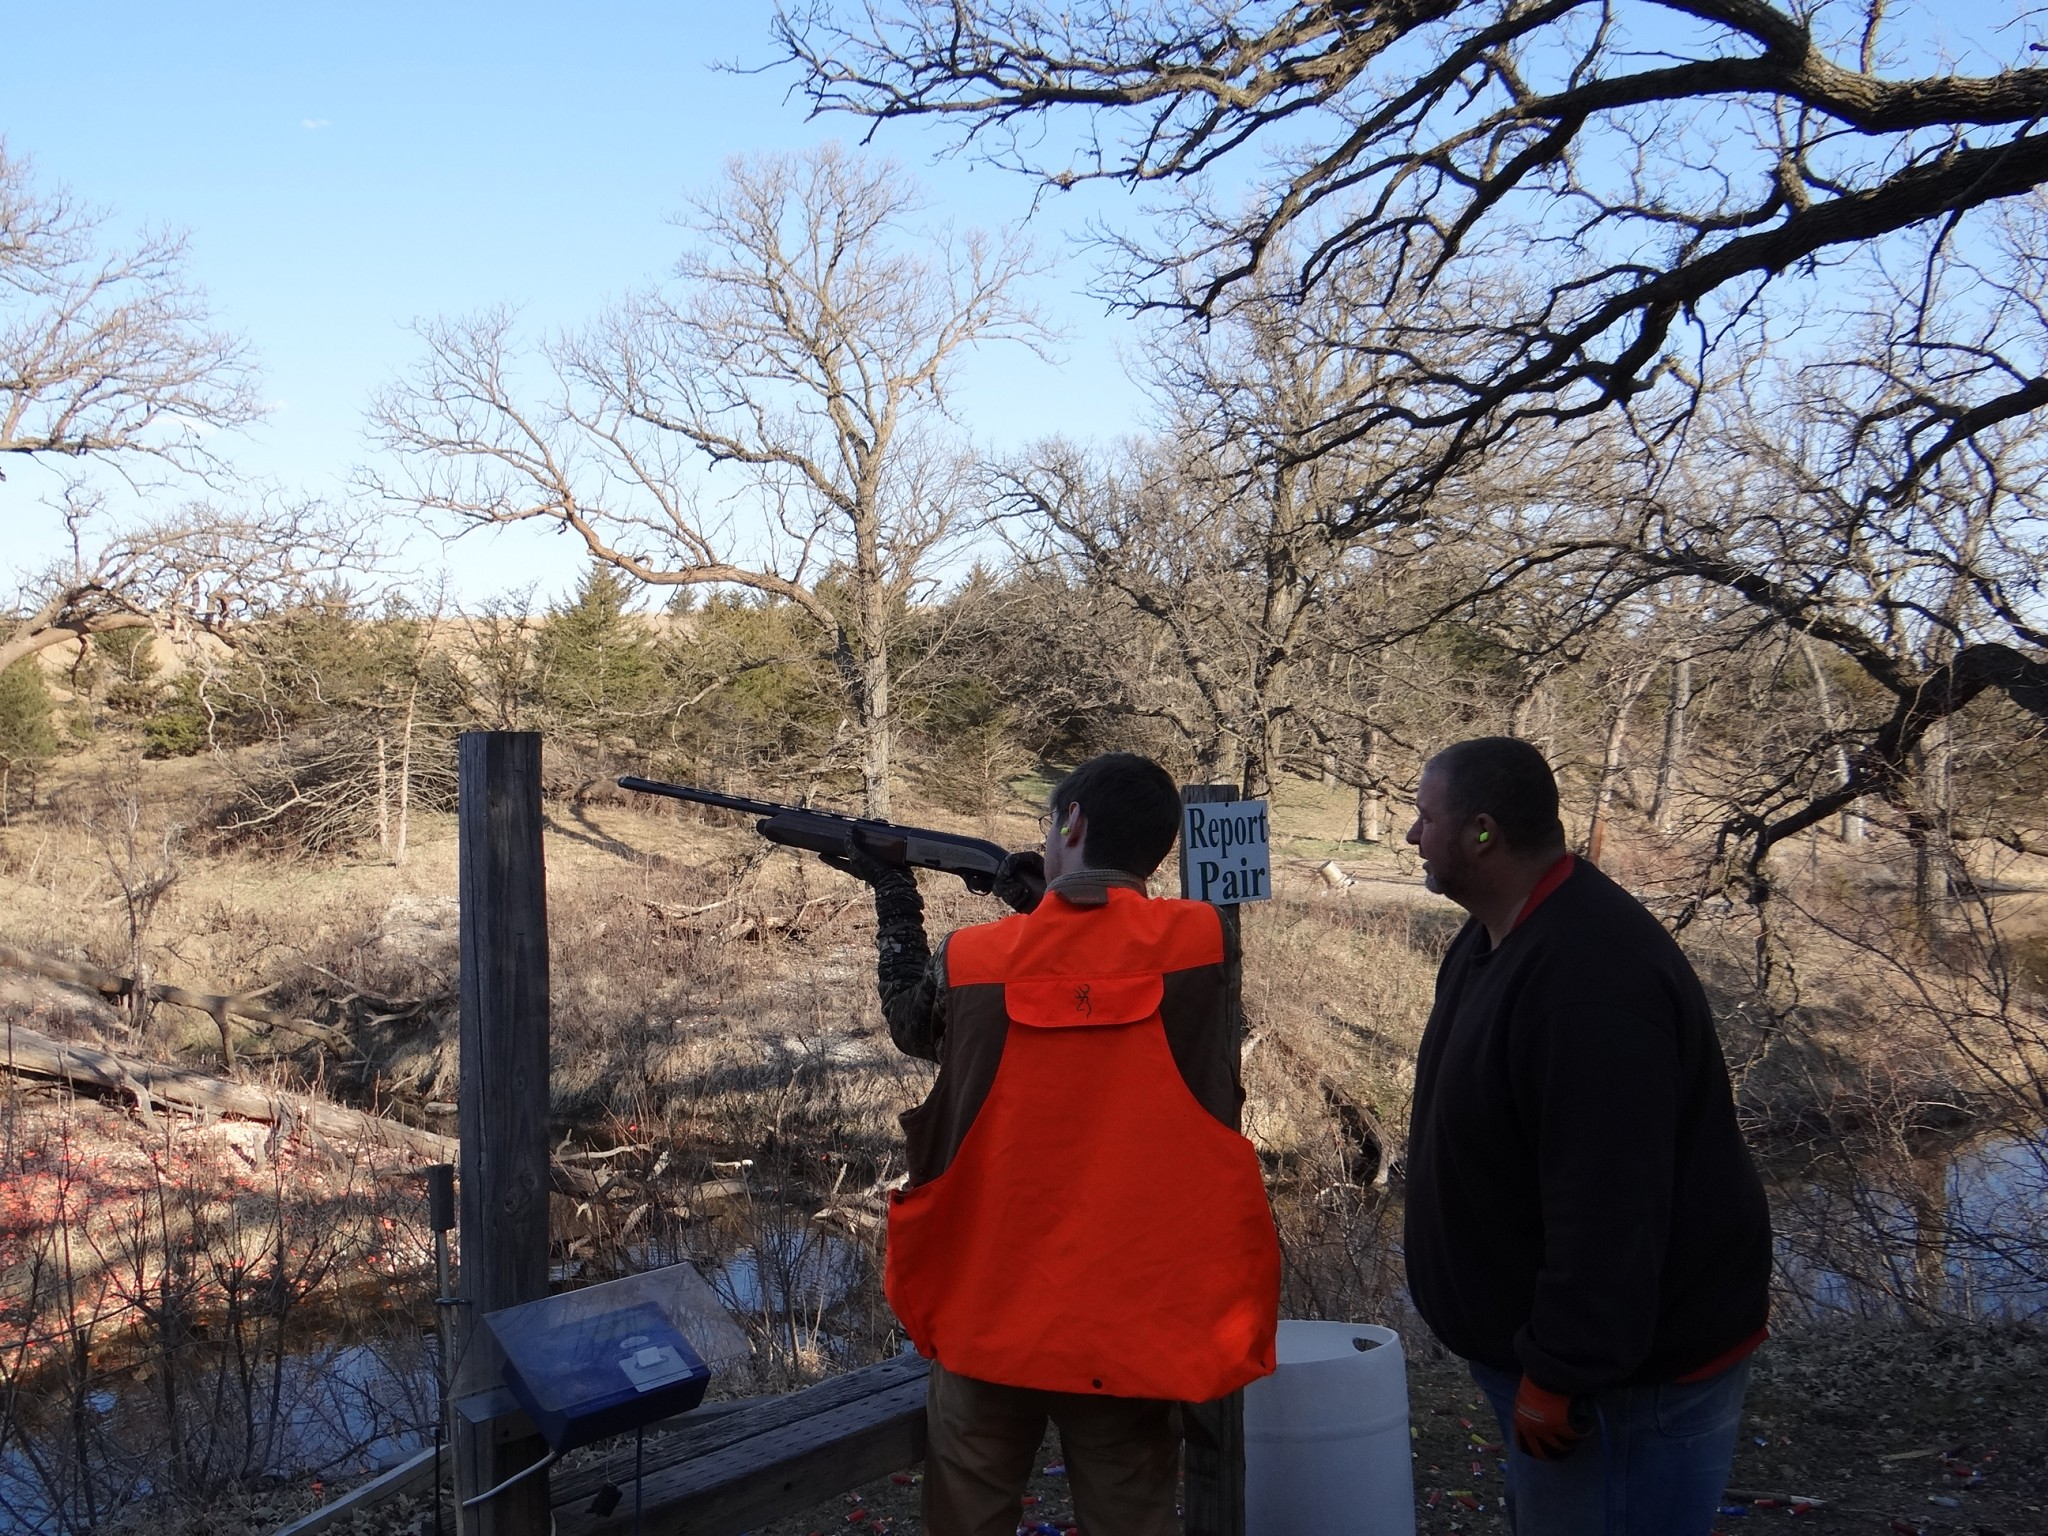 Noah shoots sporting clays at Oak Creek Sporting Club under the watchful eyes of Terry Kriz. Photo by Greg Wagner.